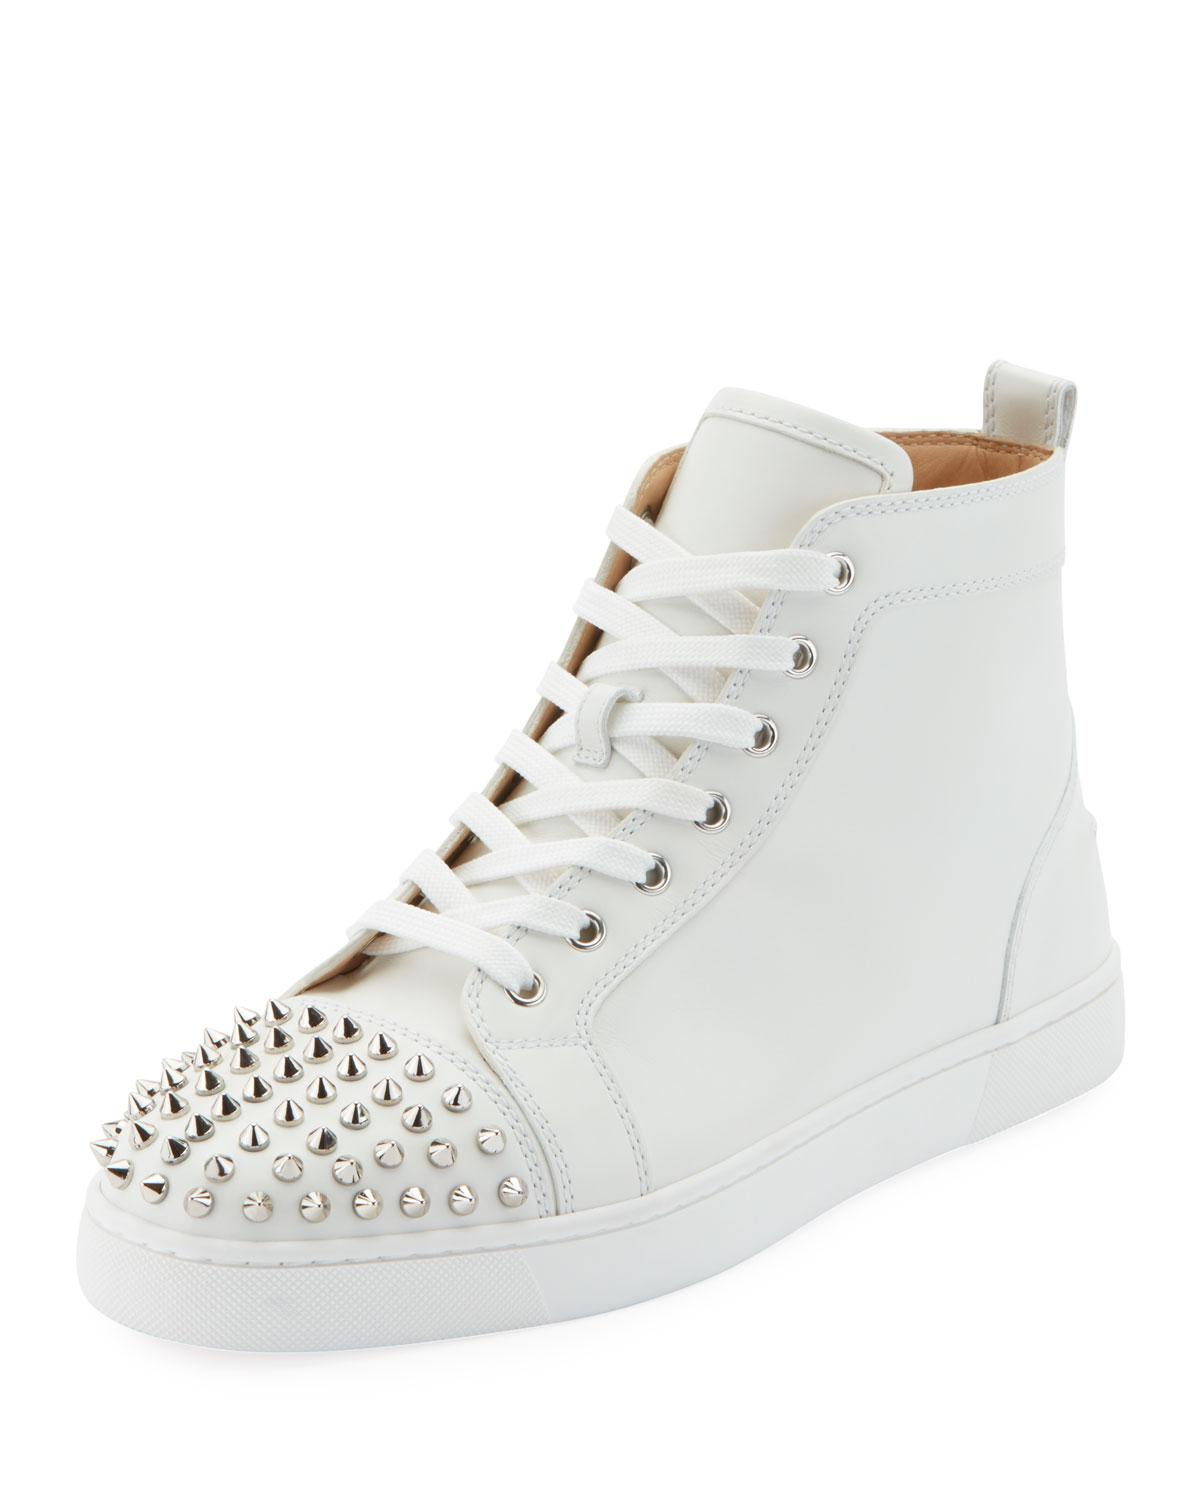 3c507be7ac3d Lyst - Christian Louboutin Men s Lou Spikes High-top Sneakers in White